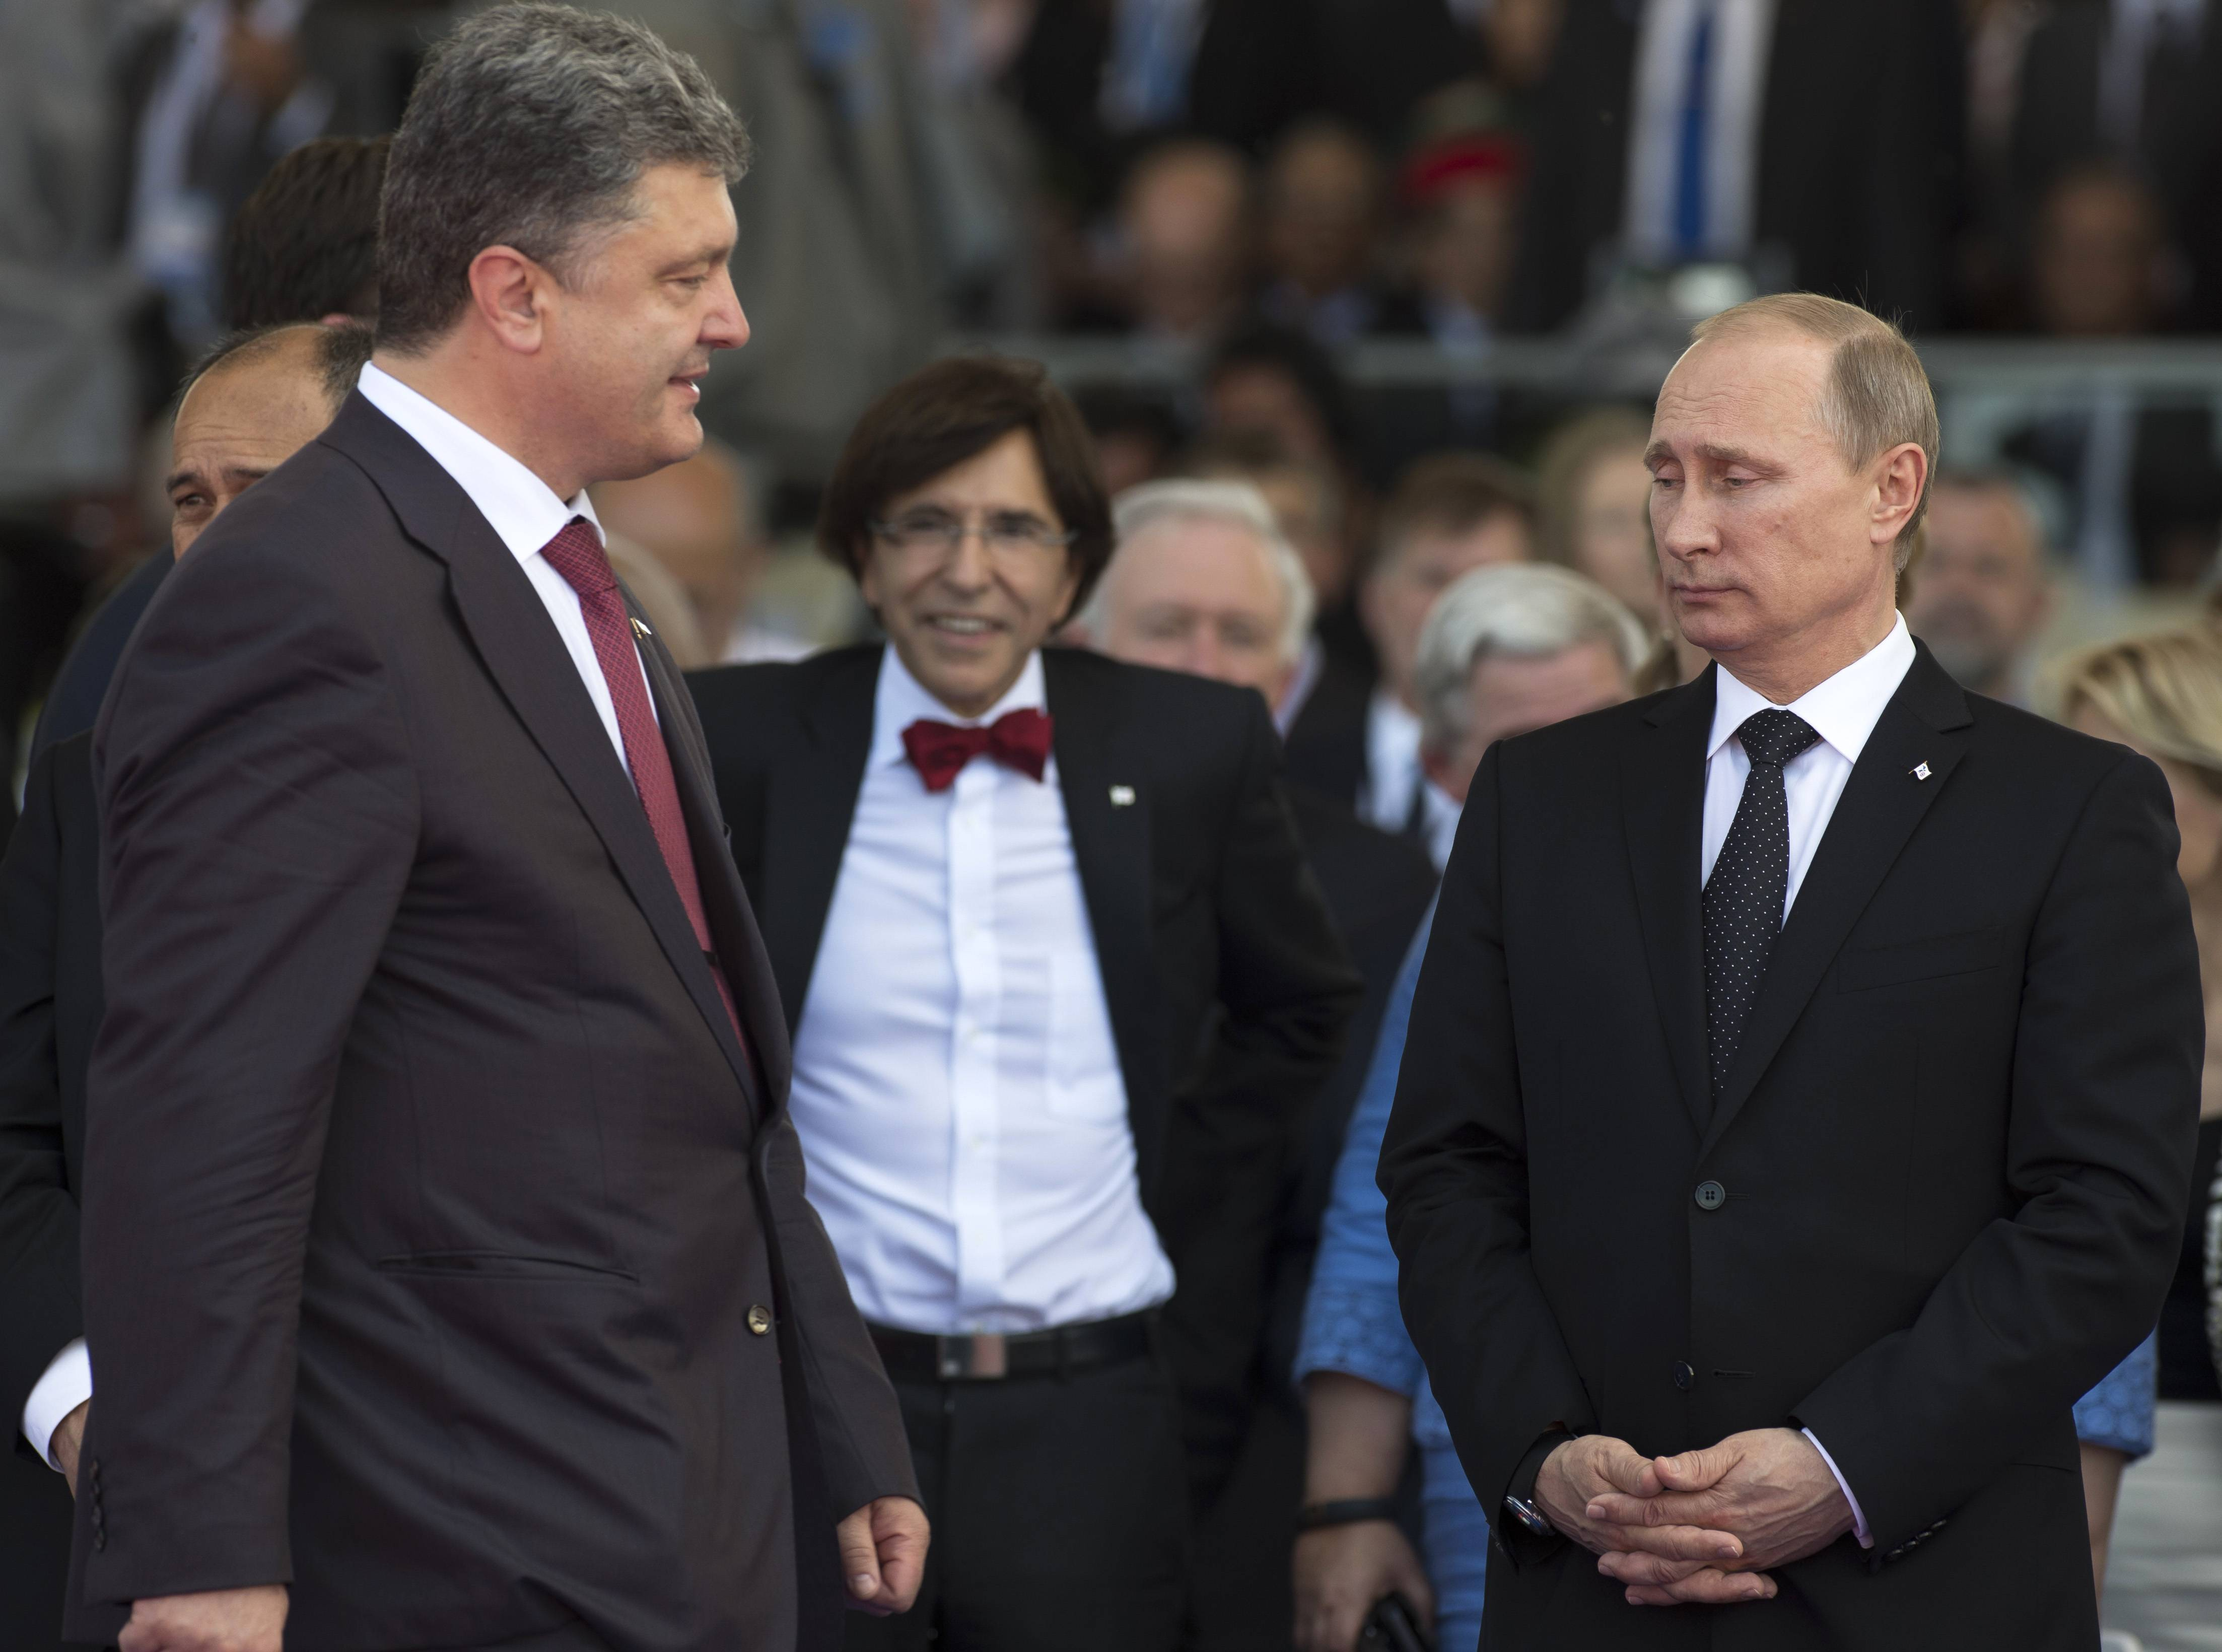 Ukraine's President-elect Petro Poroshenko, left, walks past Russian President Vladimir Putin, right, during the commemoration of the 70th anniversary of the D-Day in Ouistreham, western France, Friday, June 6, 2014.